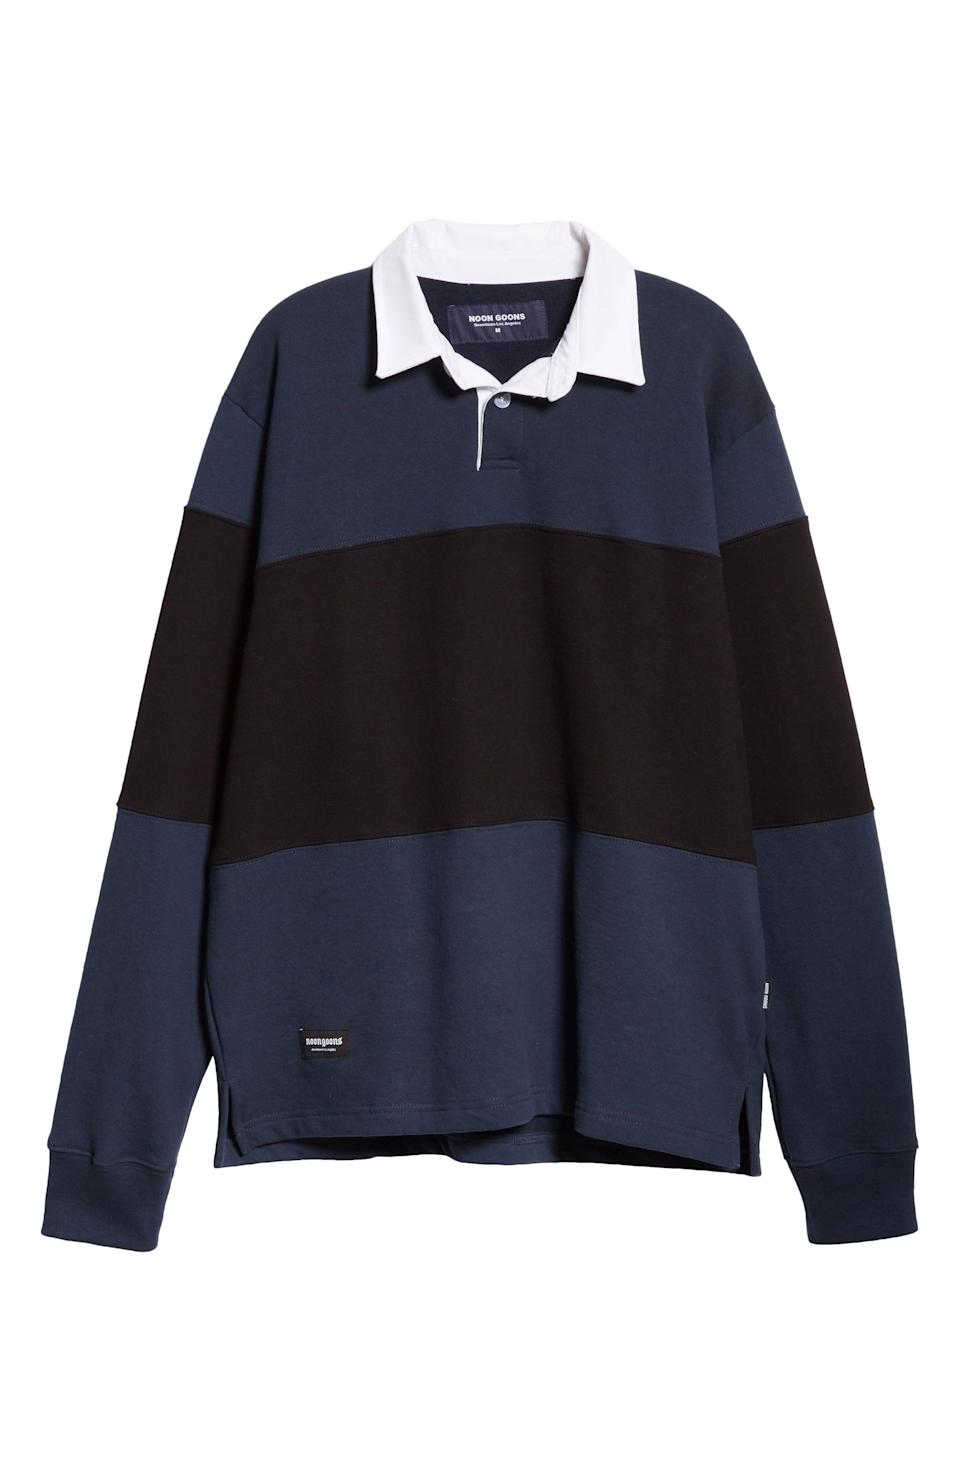 """<p><strong>NOON GOONS</strong></p><p>nordstrom.com</p><p><strong>$249.00</strong></p><p><a href=""""https://go.redirectingat.com?id=74968X1596630&url=https%3A%2F%2Fwww.nordstrom.com%2Fs%2Fnoon-goons-tri-long-sleeve-mens-rugby-polo%2F5664397&sref=https%3A%2F%2Fwww.esquire.com%2Fstyle%2Fmens-fashion%2Fg28074063%2Fbest-rugby-shirts%2F"""" rel=""""nofollow noopener"""" target=""""_blank"""" data-ylk=""""slk:Shop Now"""" class=""""link rapid-noclick-resp"""">Shop Now</a></p>"""